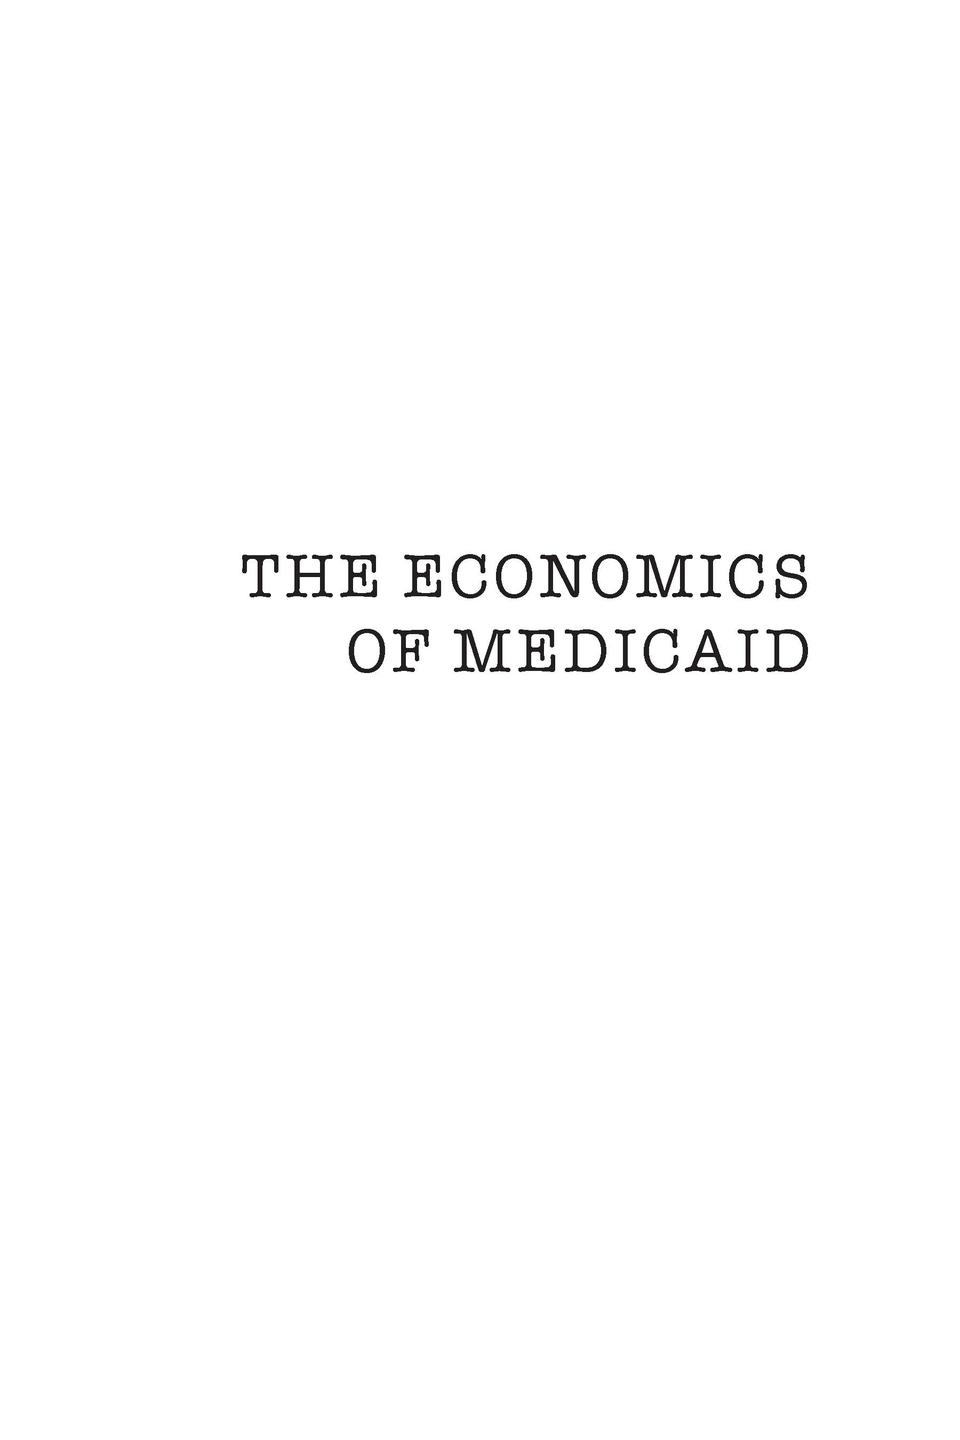 THE ECONOMICS OF MEDICAID